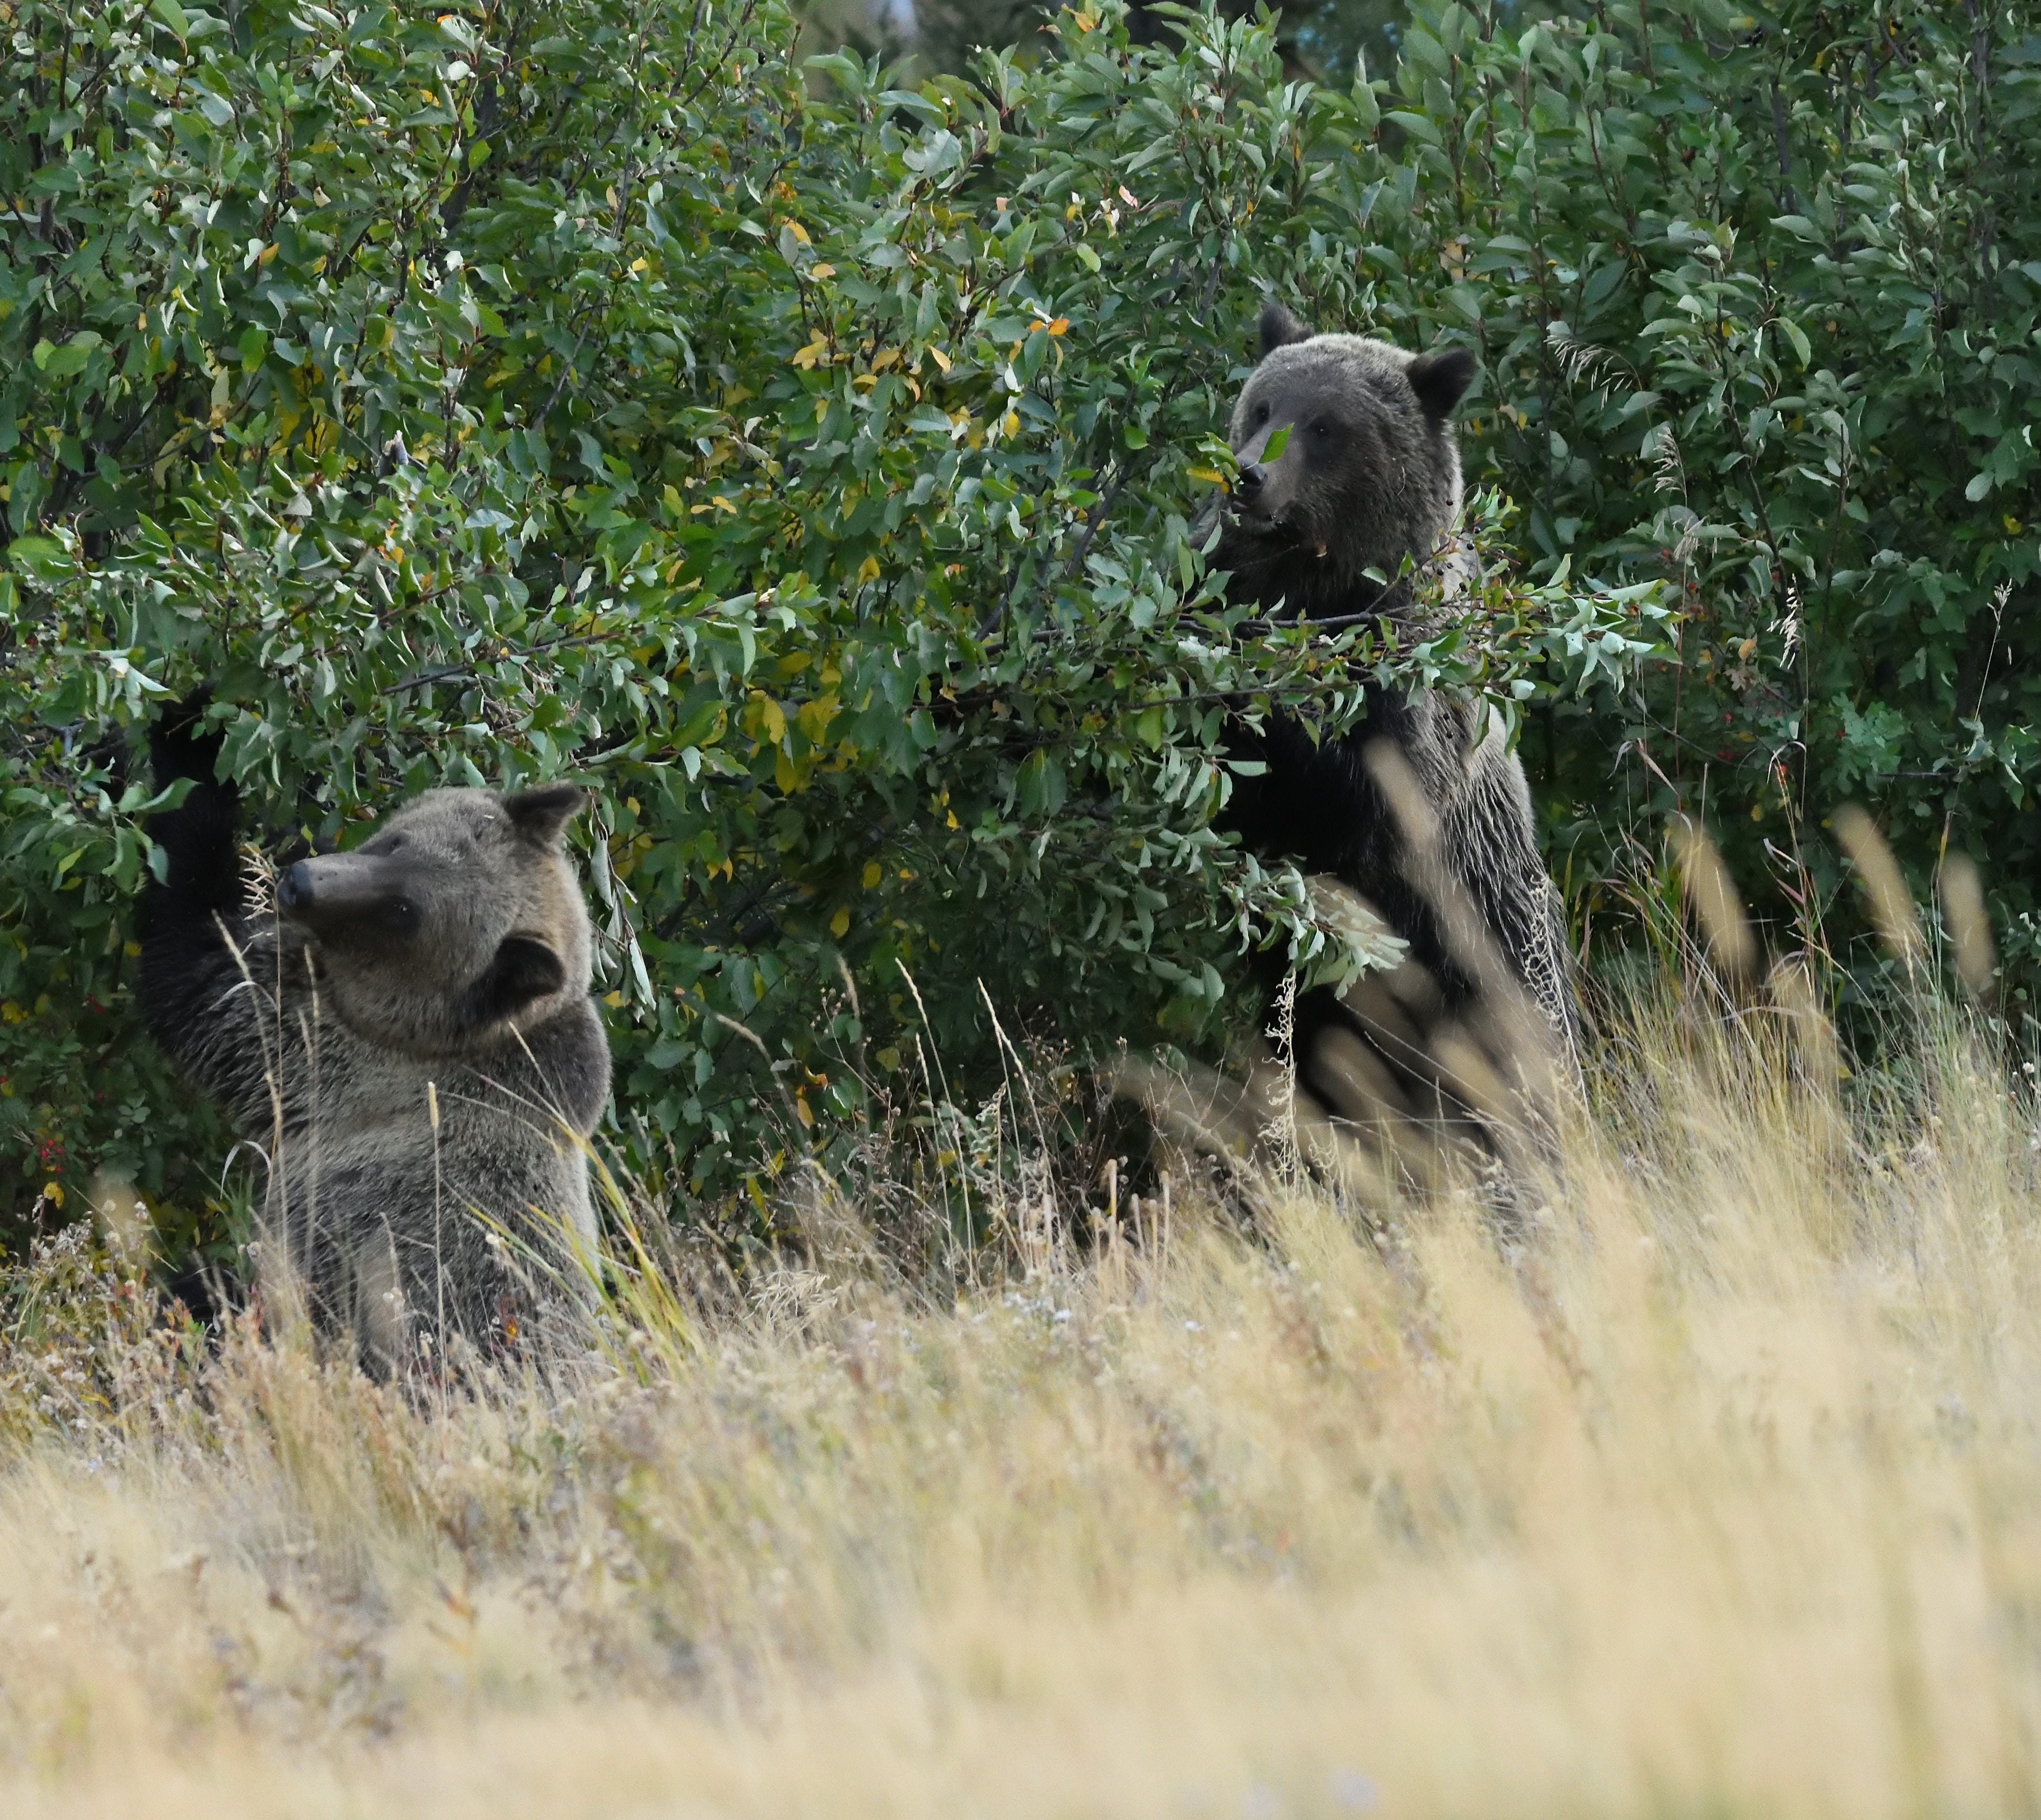 bears and examples of the Canadian wildlife that you can come across hiking Banff trails